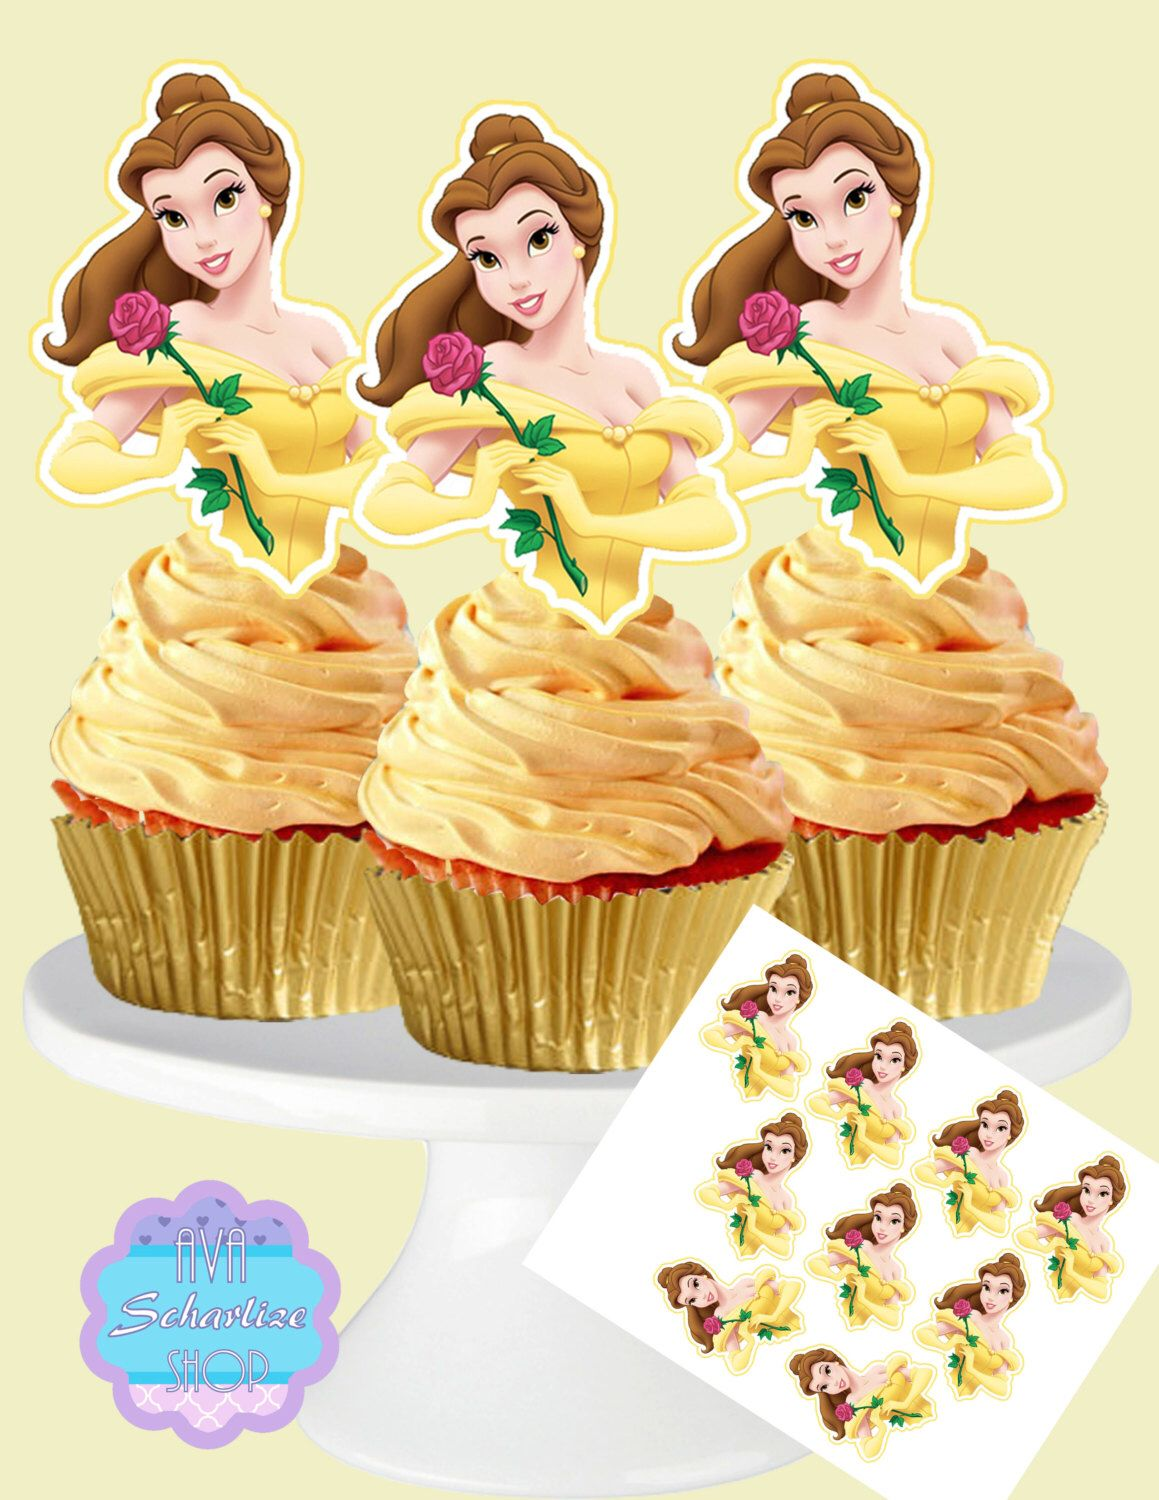 Beauty And The Beast Cupcake Toppers Princess Belle Cupcake Topper Belle Cupcake Picks Diy Printable Instant Download Beauty And The Beast Cupcakes Princess Belle Beauty And The Beast